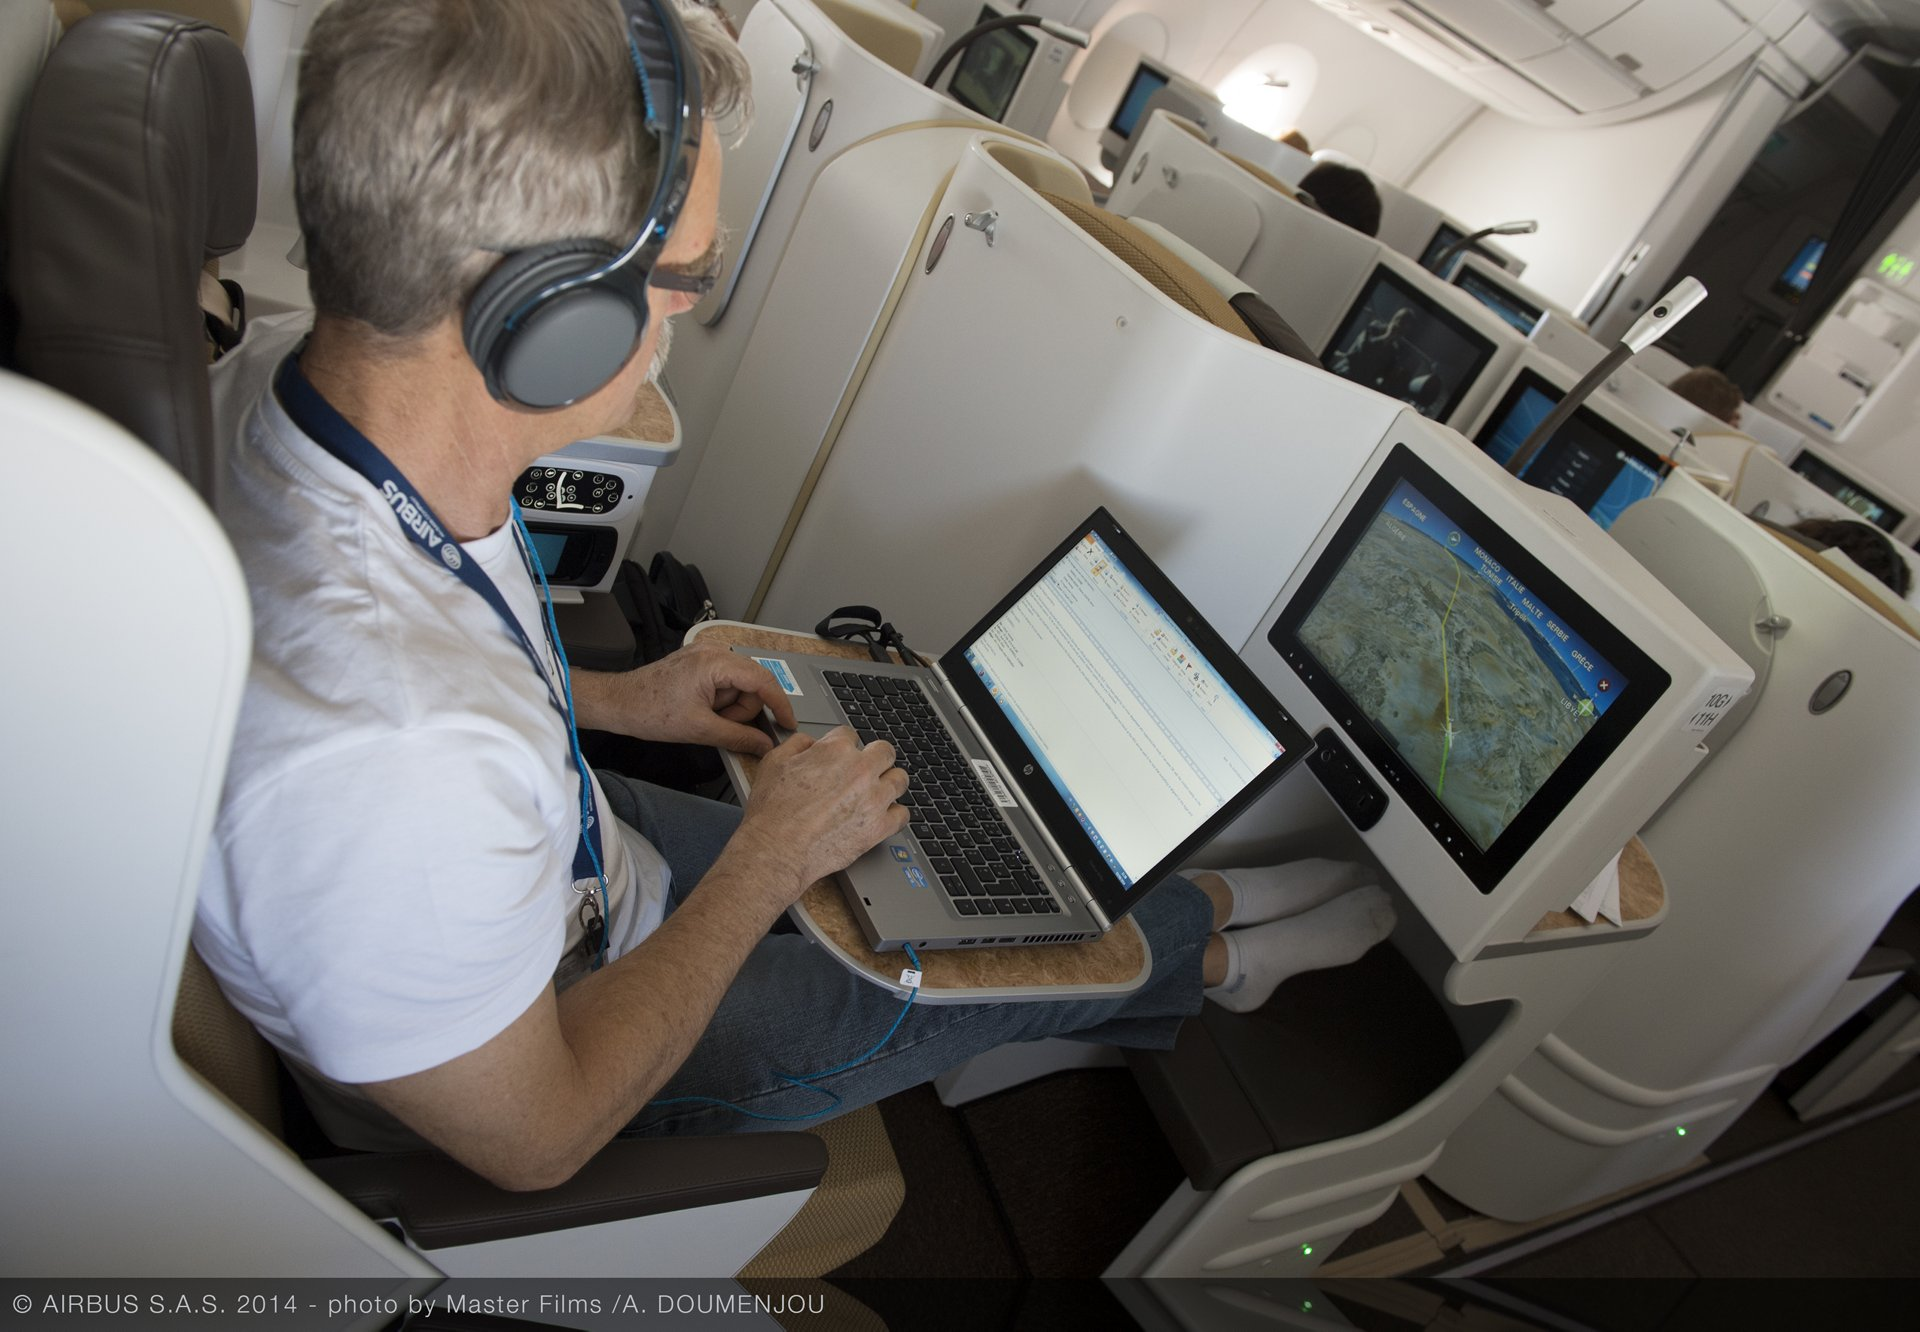 Airbus embodiment and repair is the right organisation to organise your retrofit for more on-board connectivity in a timely manner and end-to-end approach.